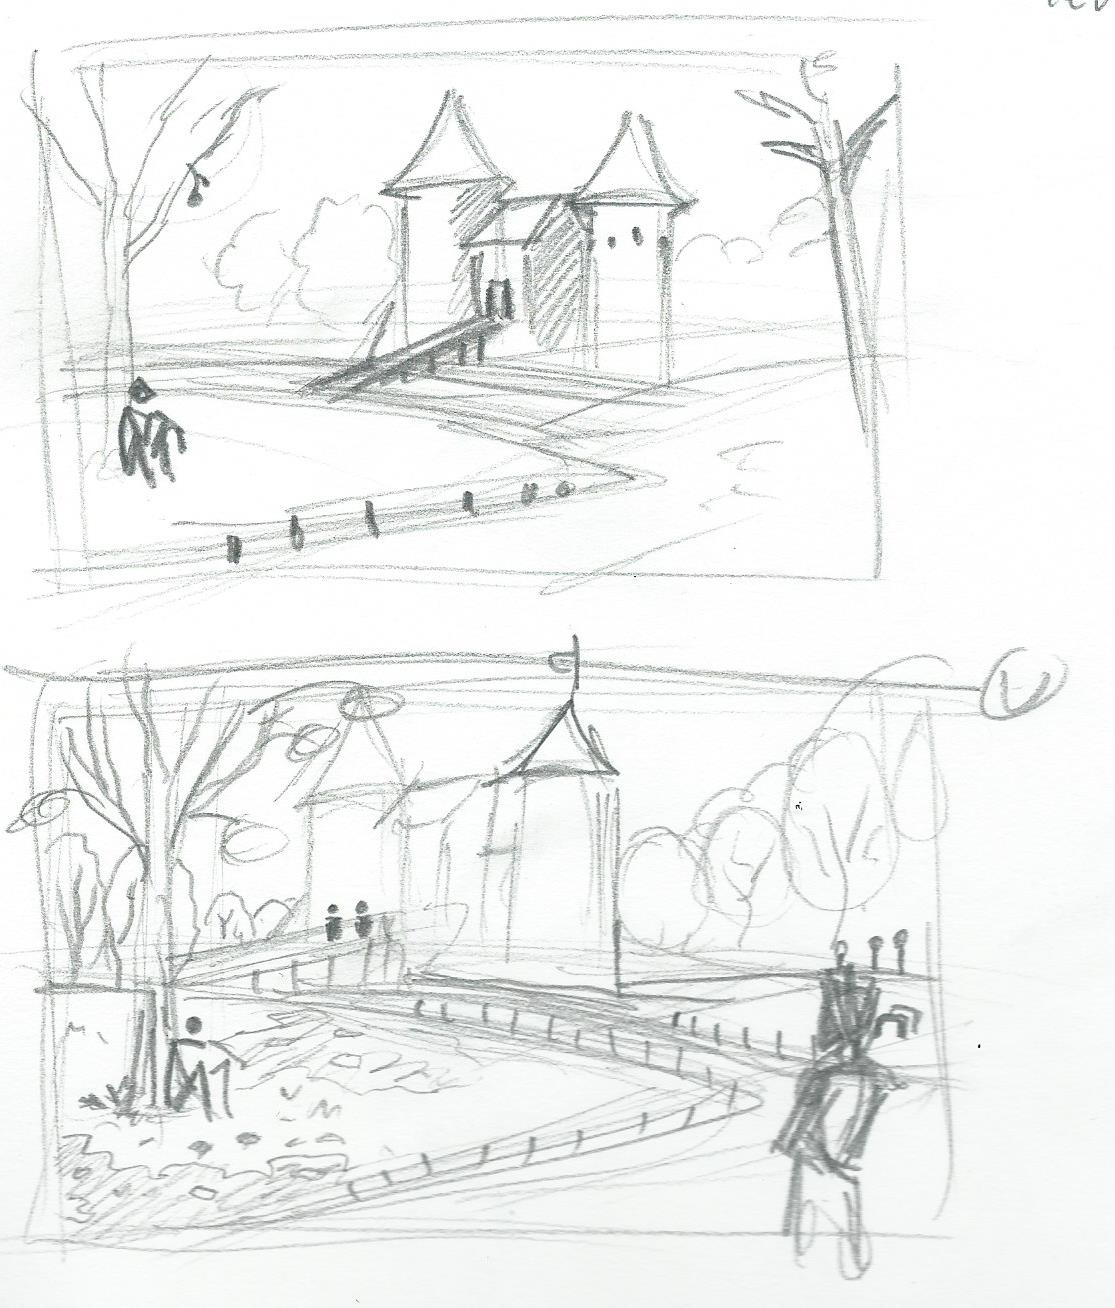 Pencil sketches of Castell Coch.